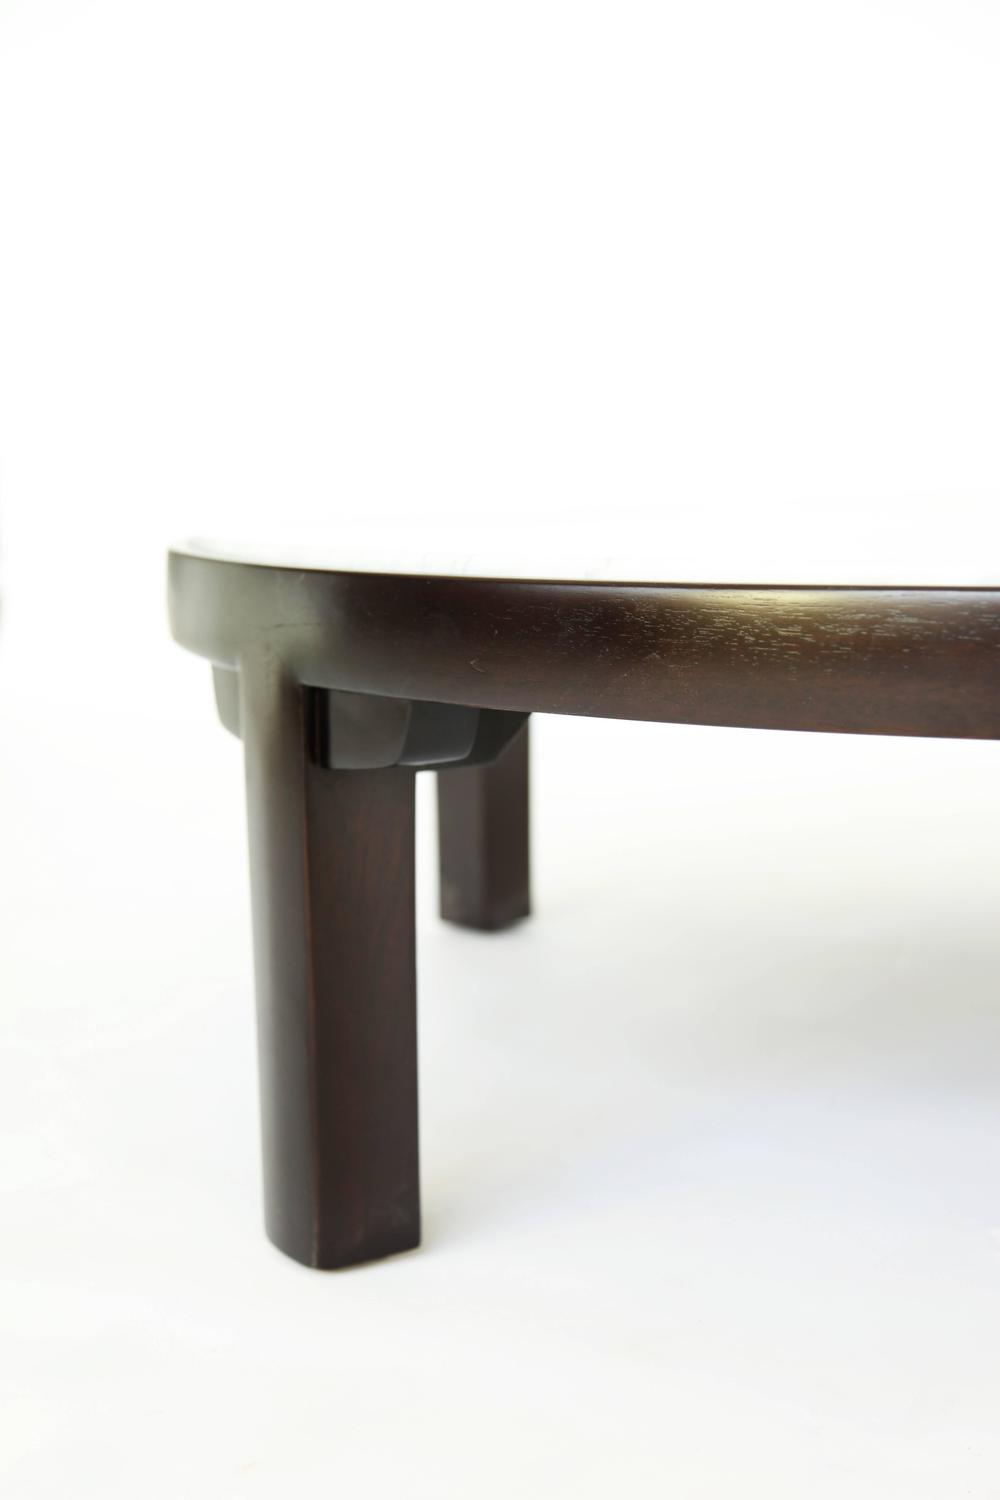 Edward wormley cocktail table for sale at 1stdibs for Cocktail tables for sale in kzn